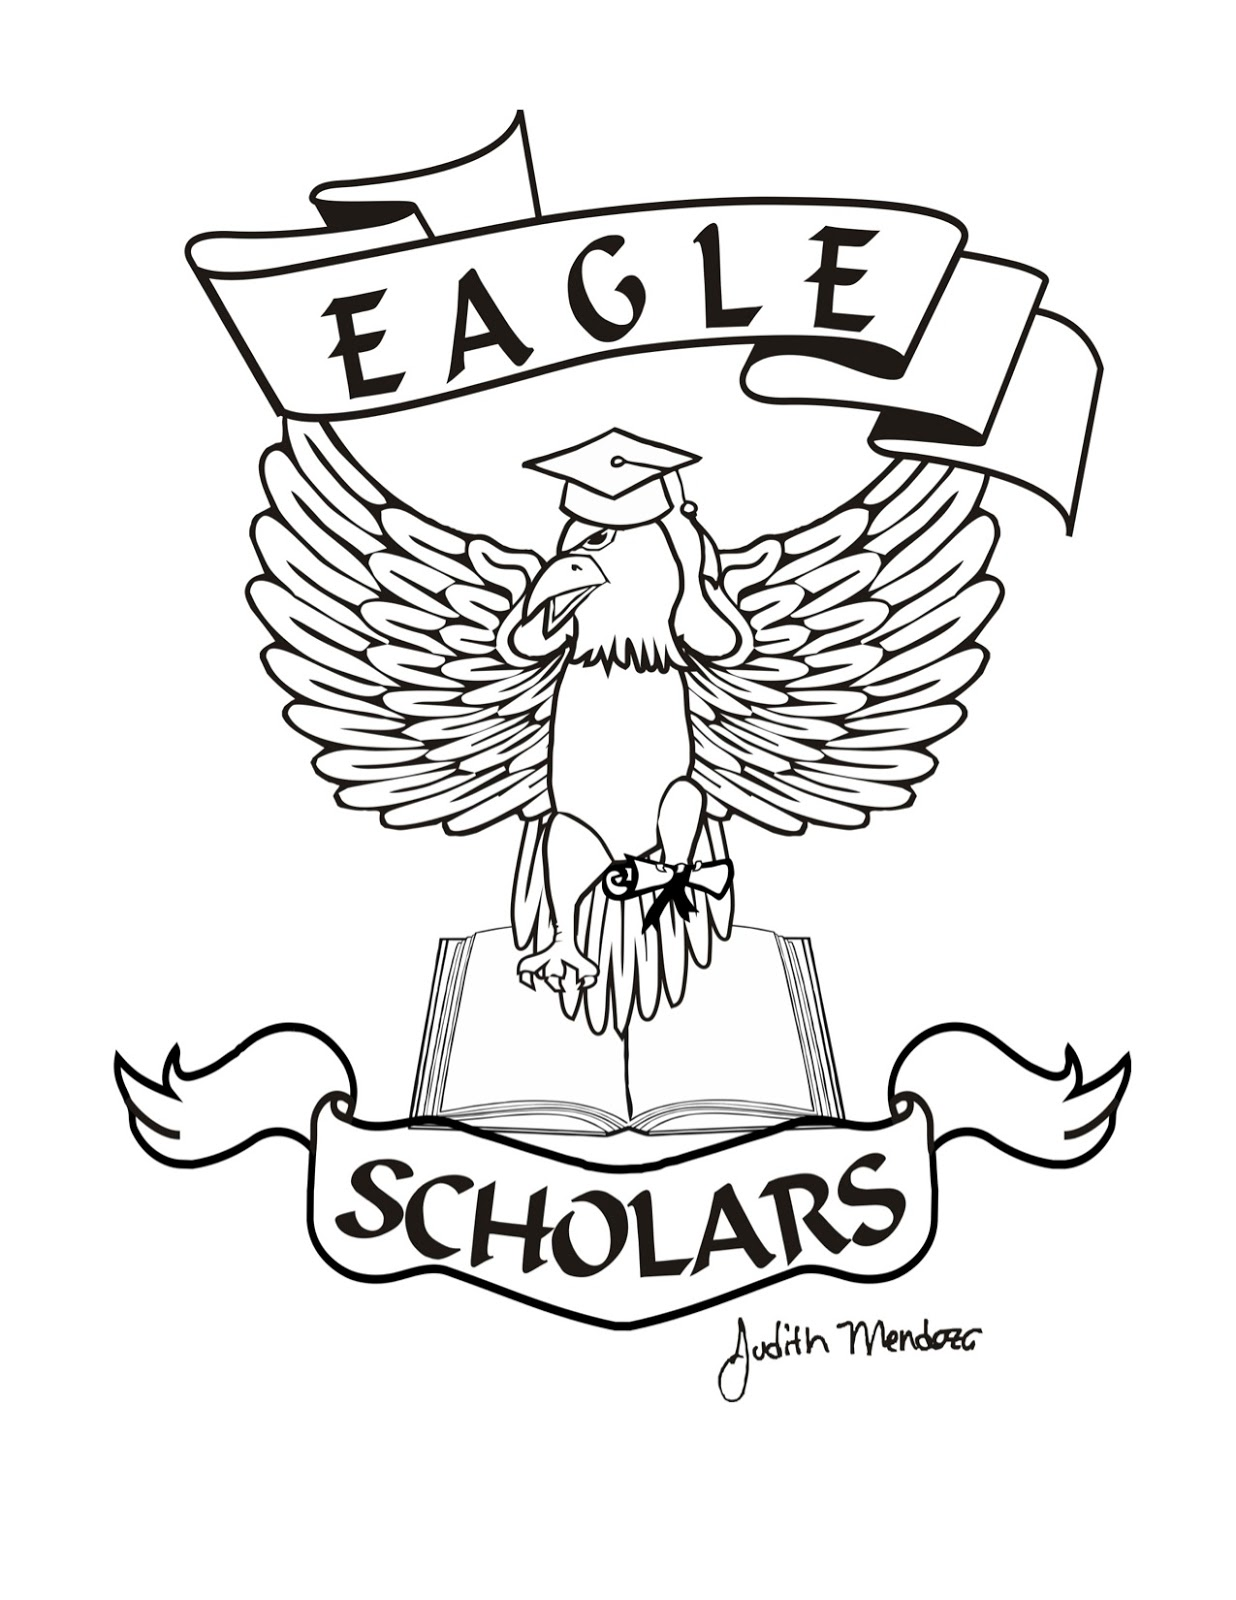 Eagle scholars of vickery meadow current eagle scholars